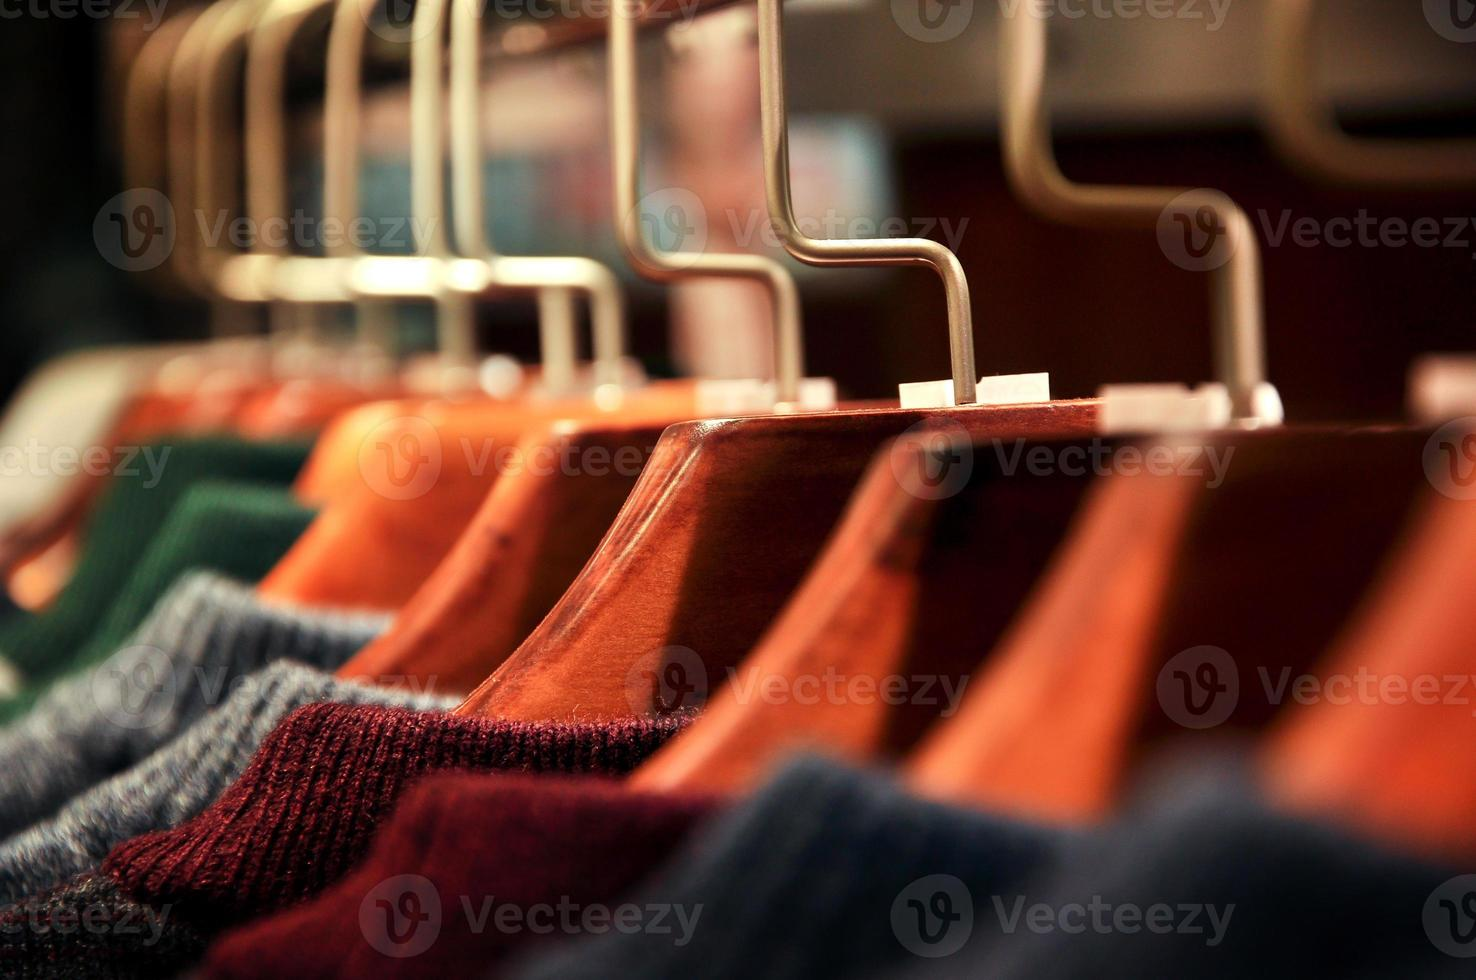 Men's clothes hung in the closet photo